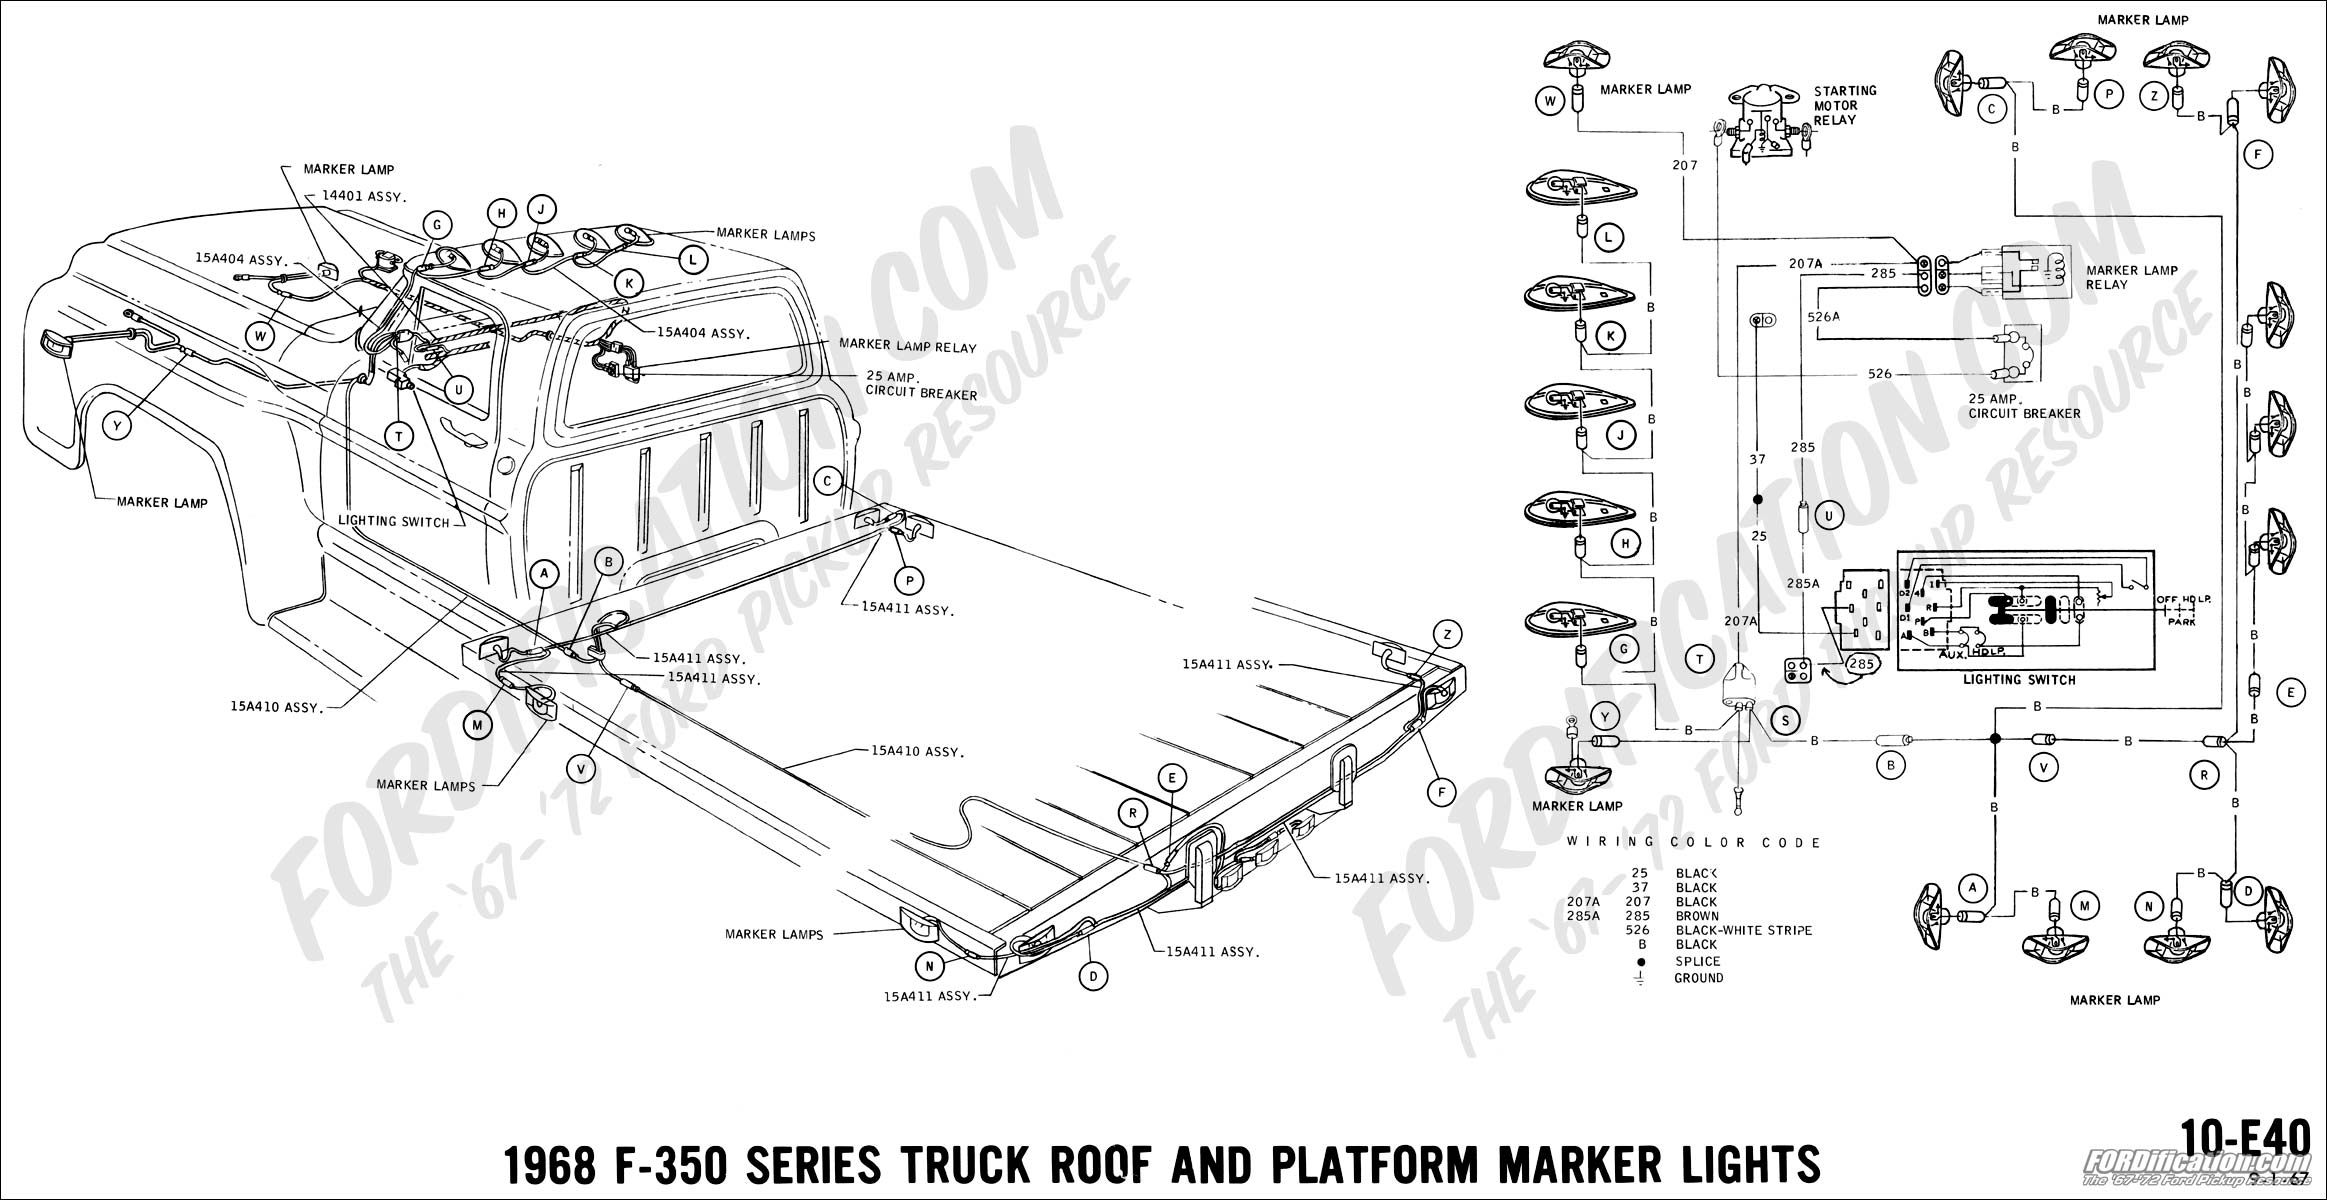 68 42 ford truck technical drawings and schematics section h wiring marker light wiring diagram at soozxer.org